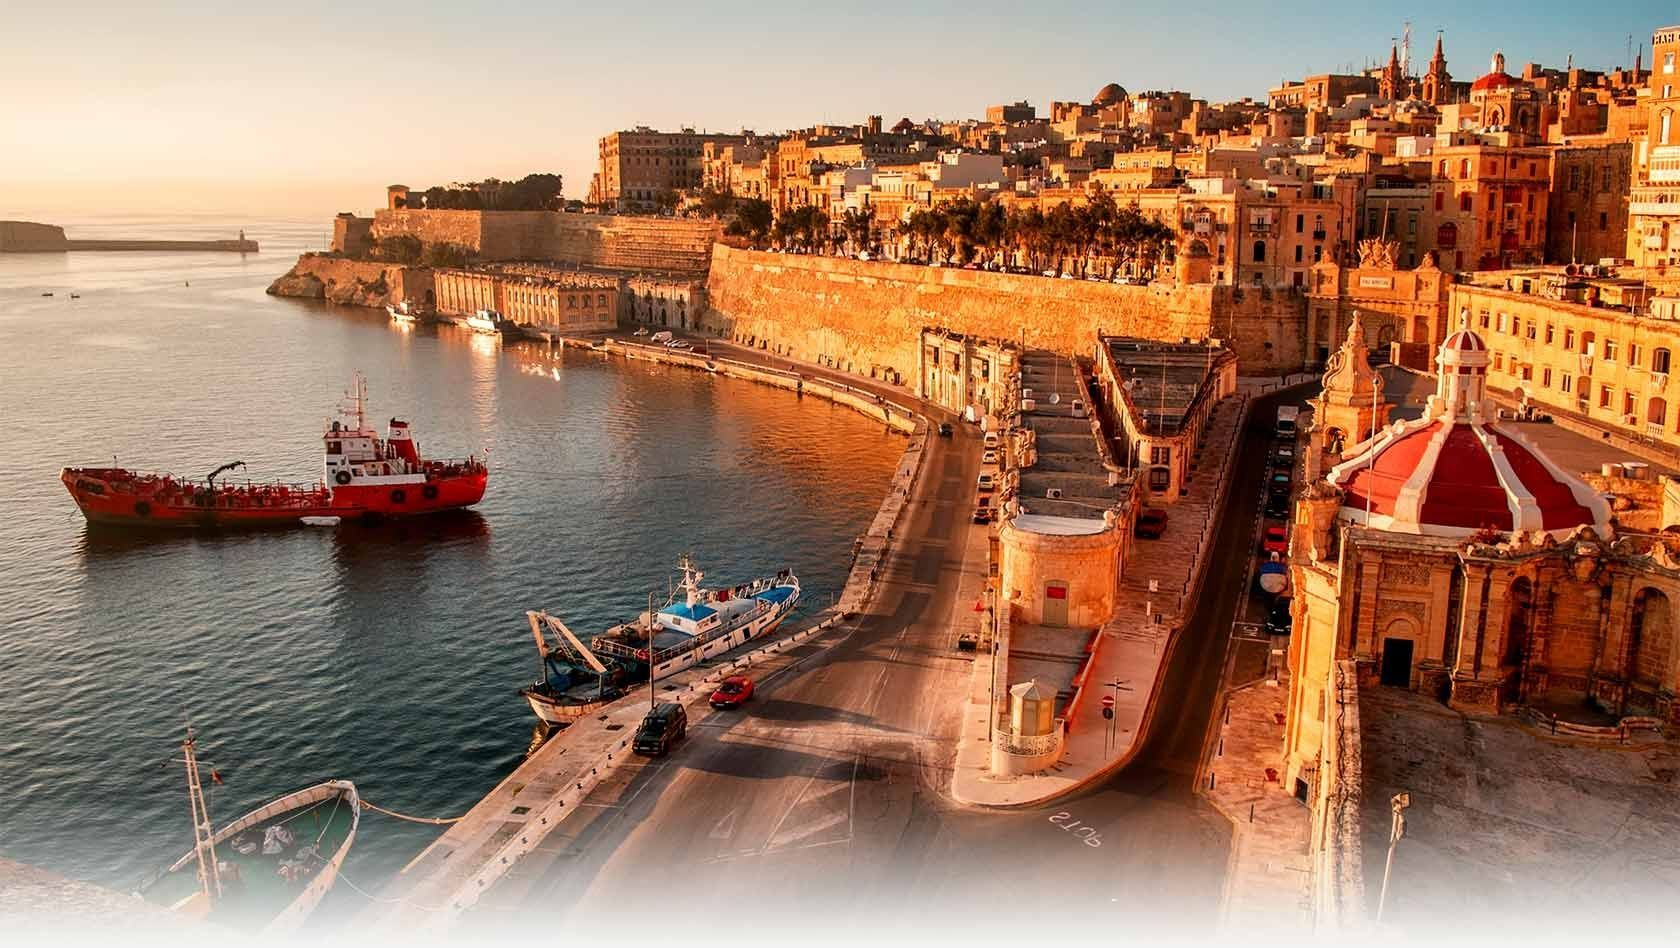 Malta Wallpapers Top Free Malta Backgrounds Wallpaperaccess Images, Photos, Reviews